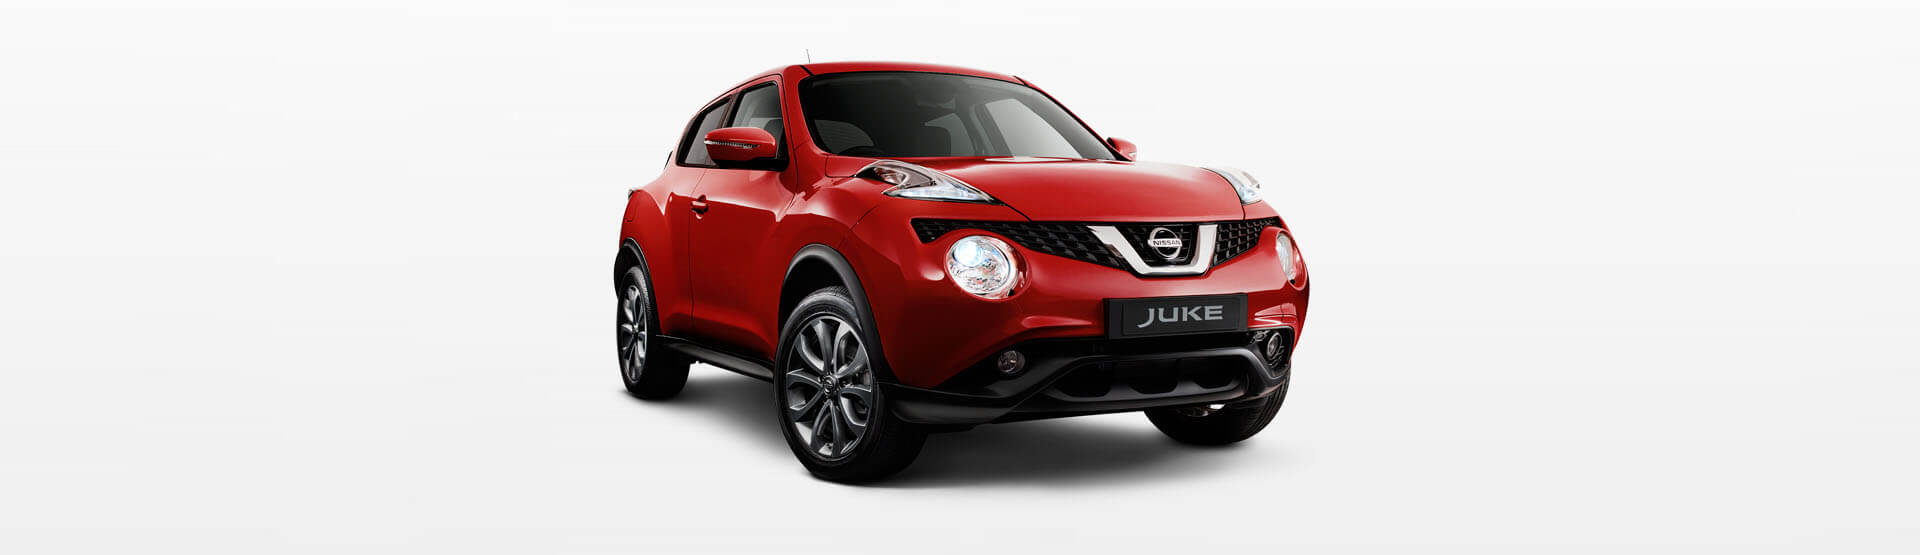 New Nissan JUKE for sale in Sunshine Coast - Cricks Nissan